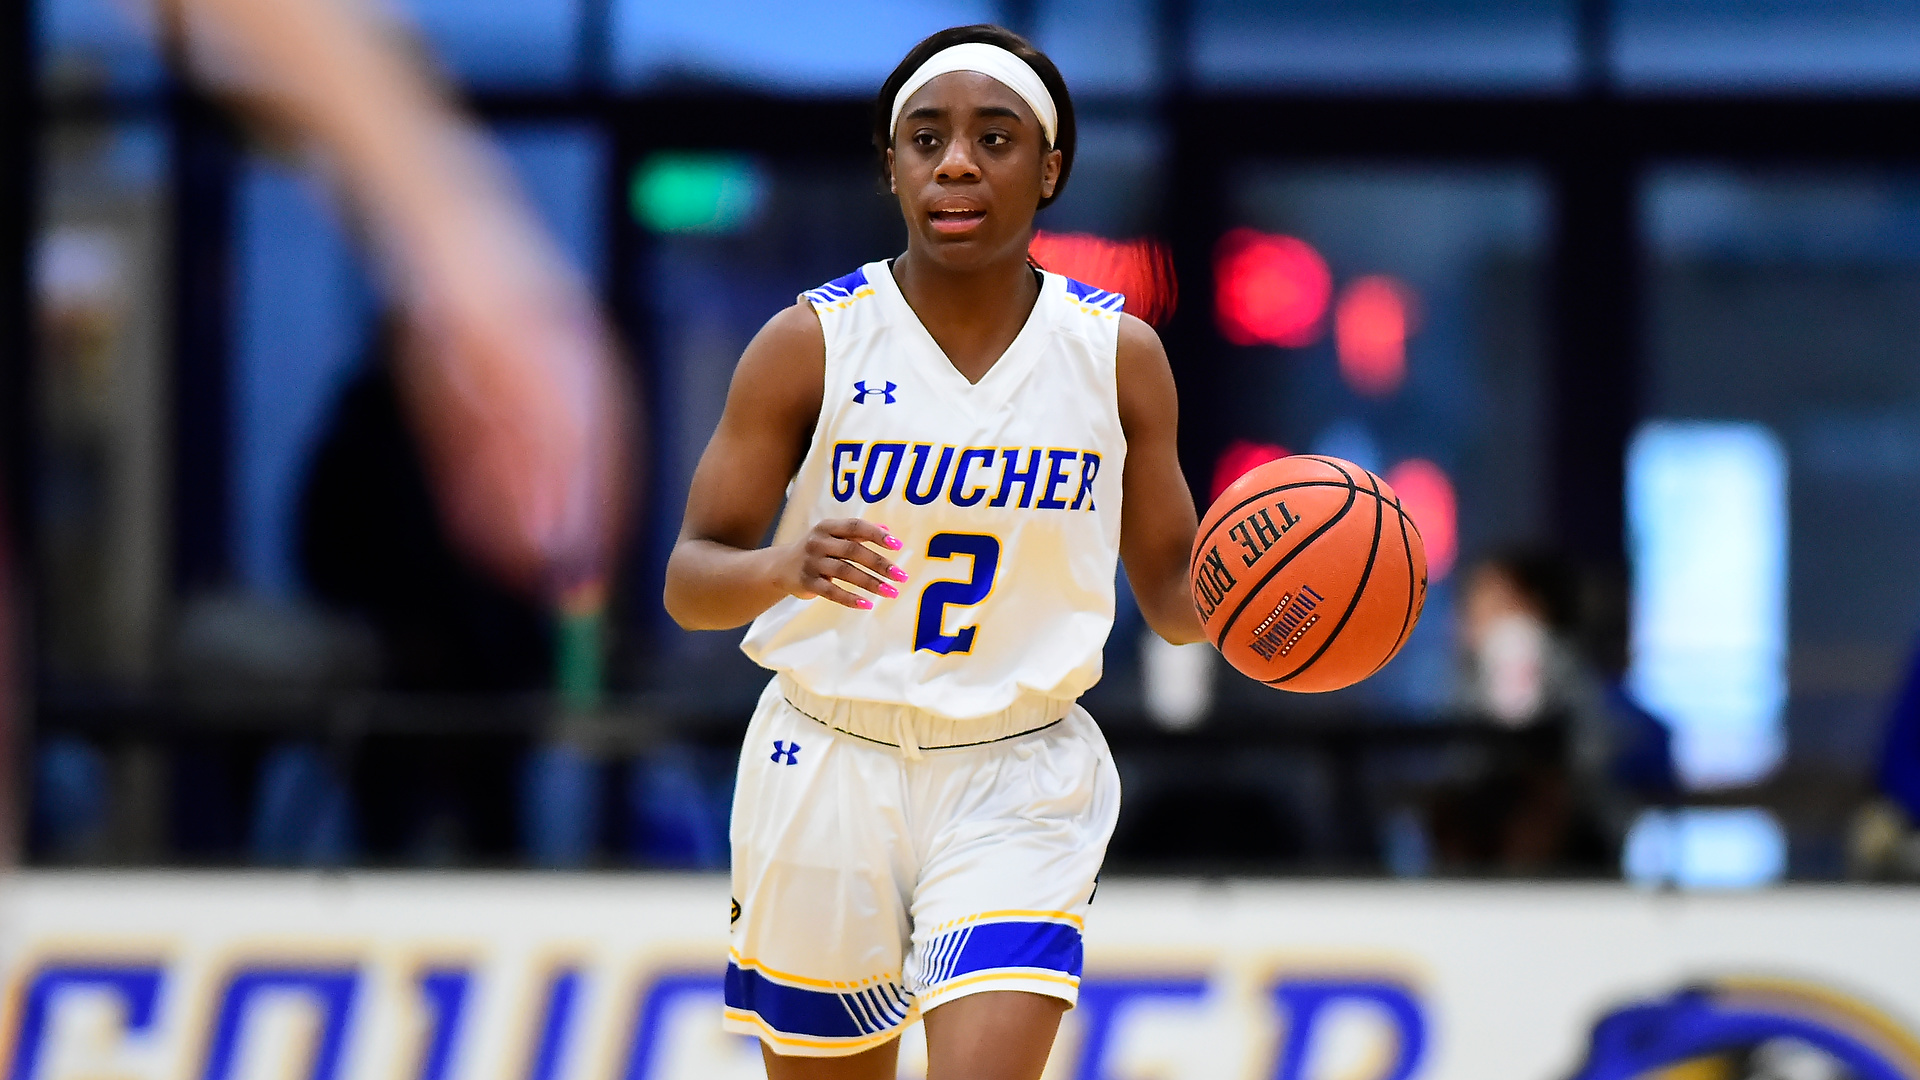 Williams' 28 Points And Clutch Free Throw Shooting Down The Stretch Propels Goucher Women's Basketball Past Juniata, 71-67